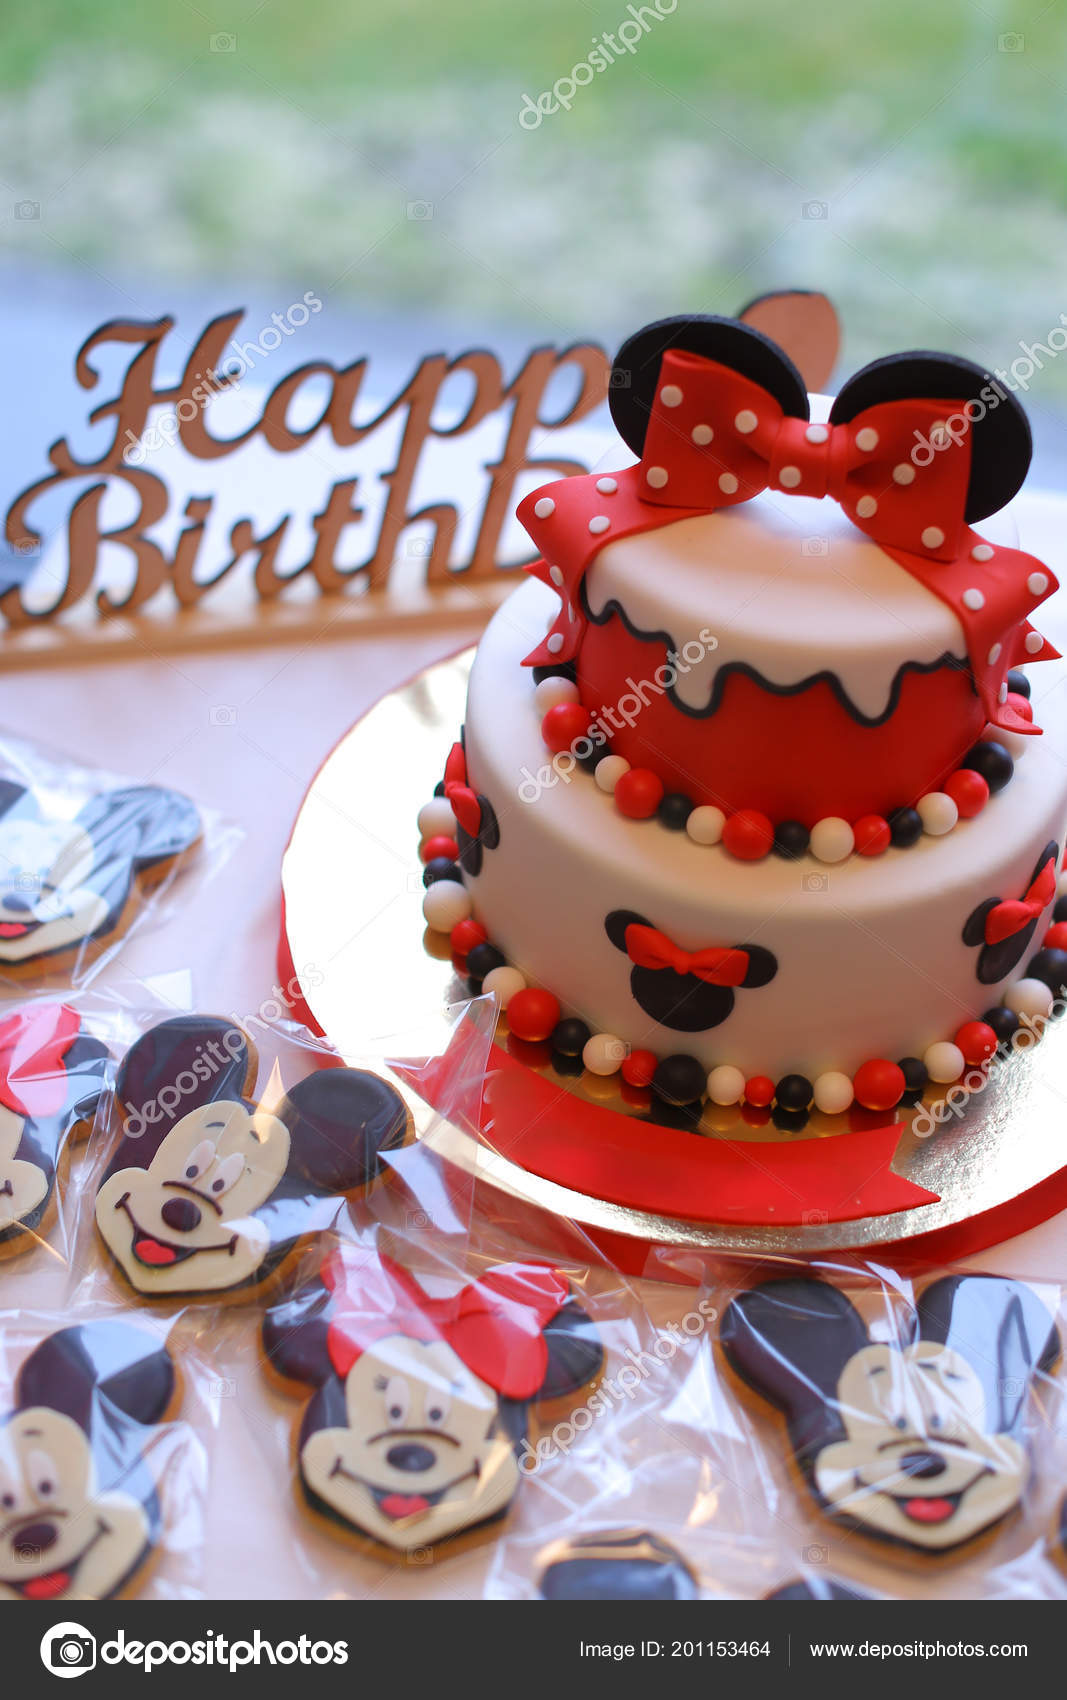 Mickey Mouse cakes for birthday  — Stock Photo © sisterspro #201153464